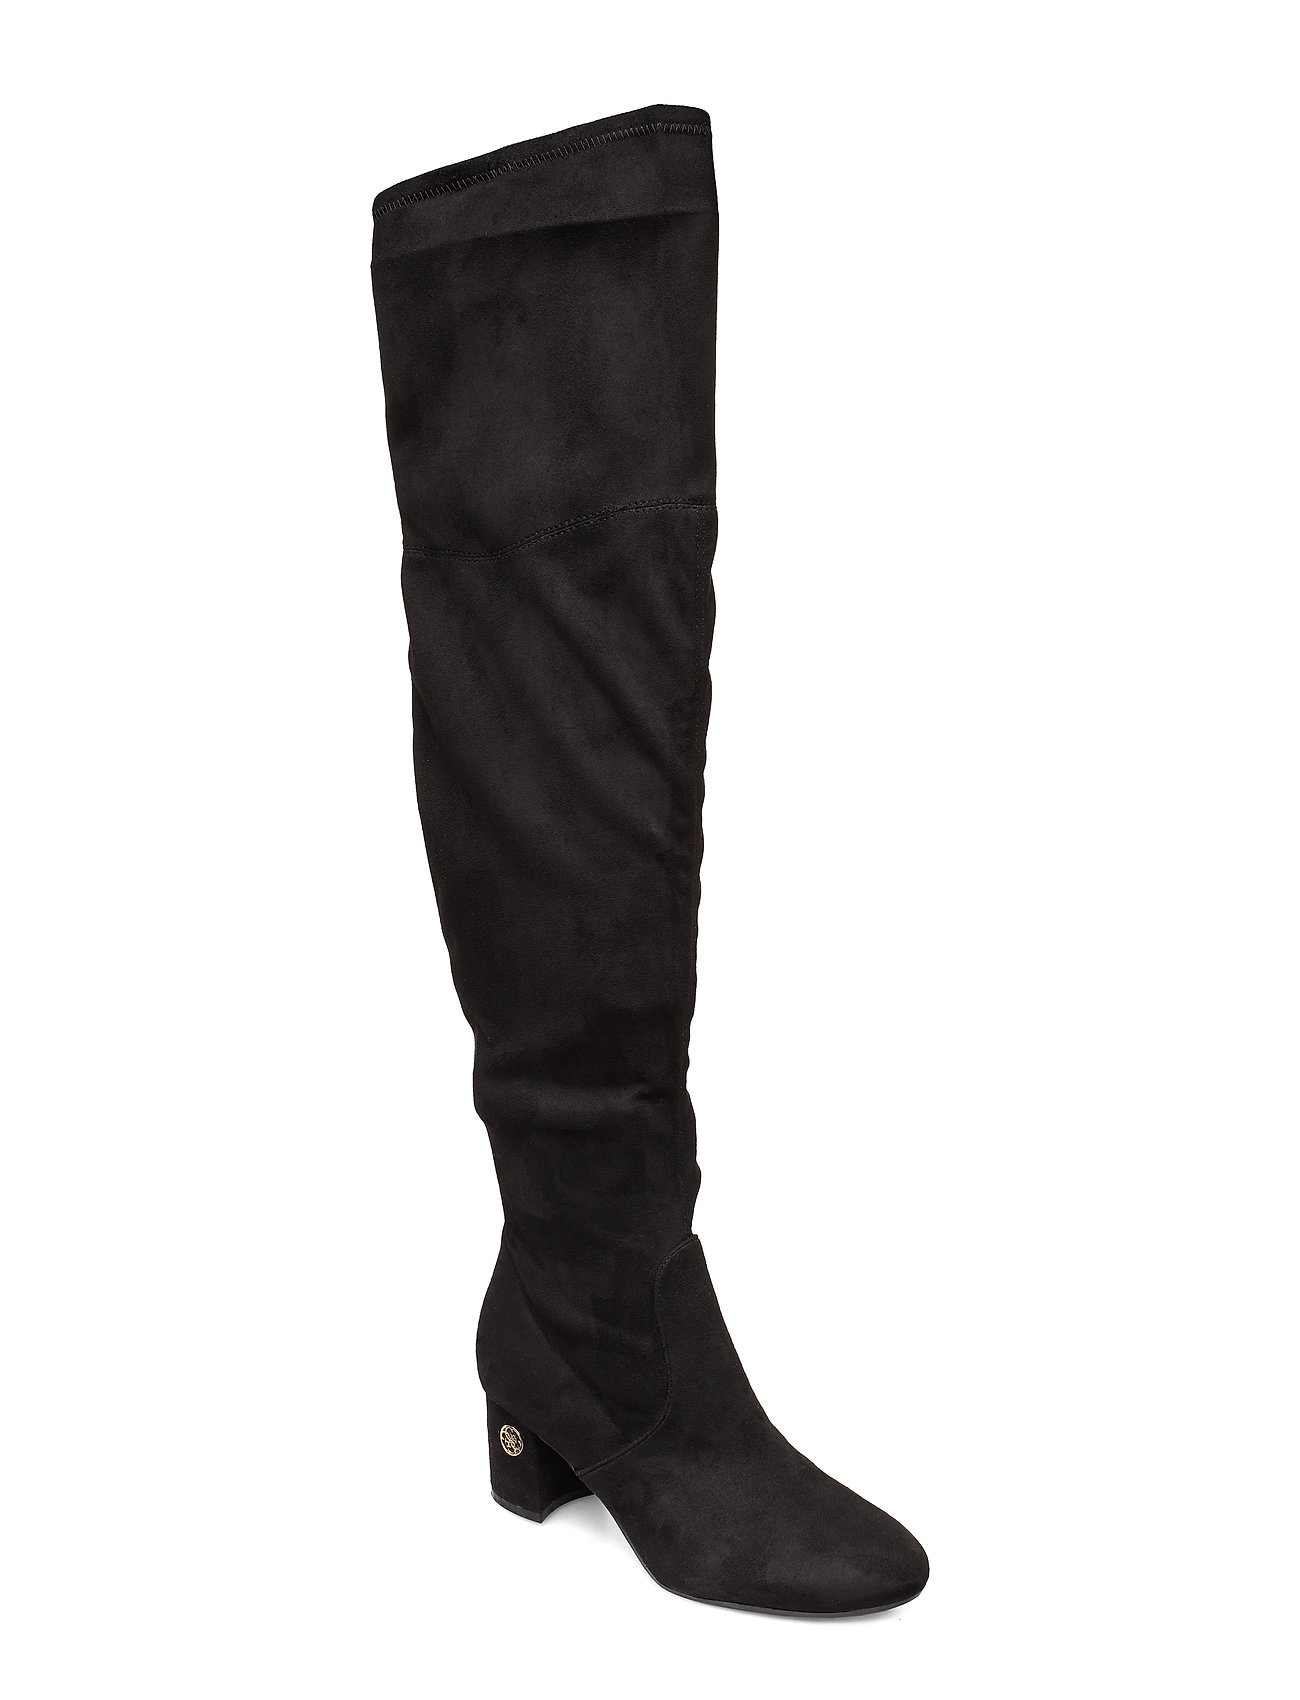 GUESS ADLEE2/STIVALE (BOOT)/FABRIC - BLACK